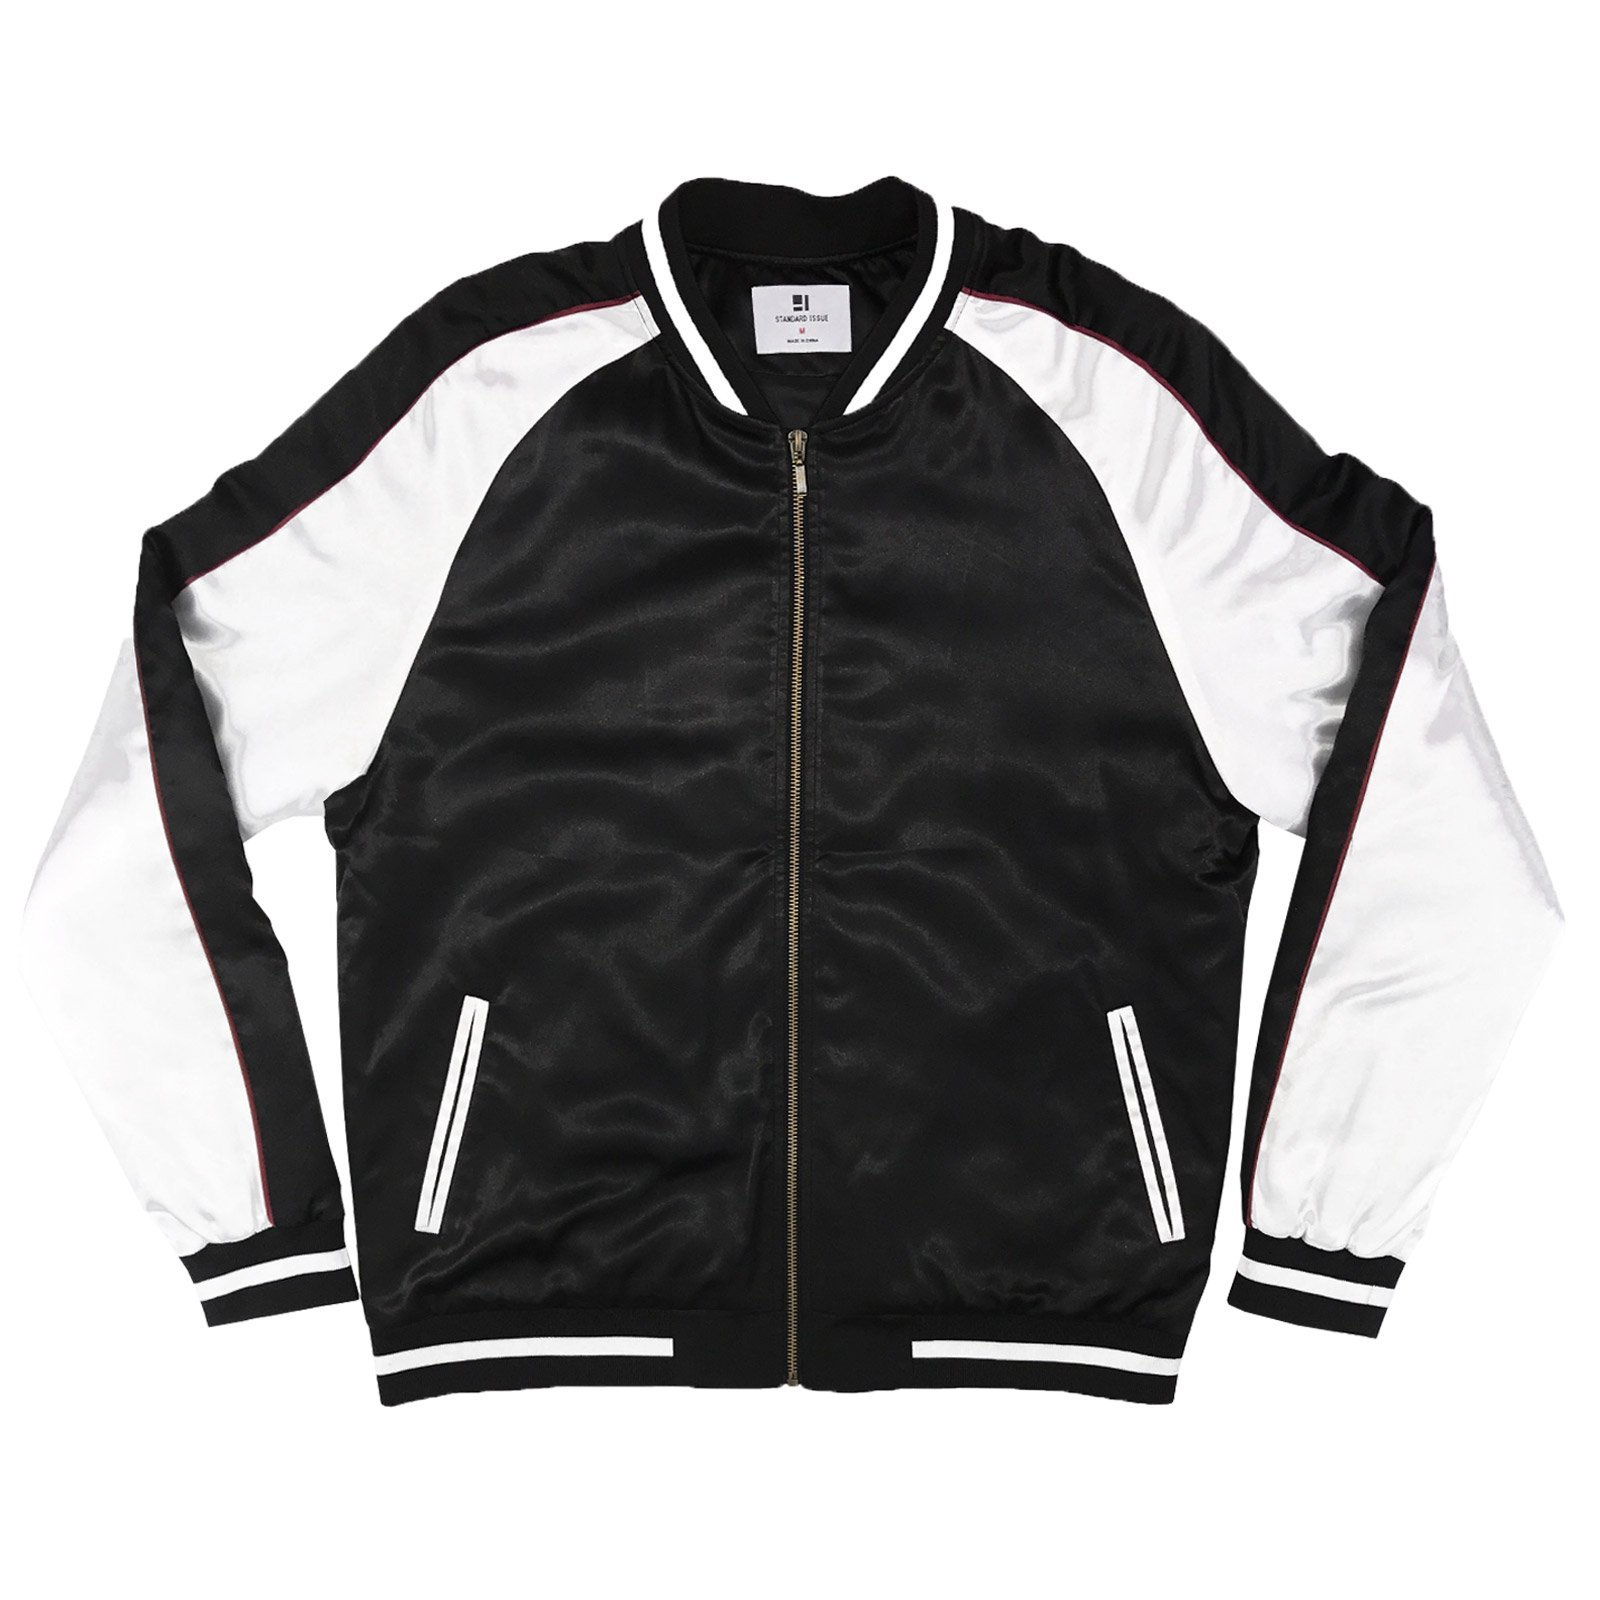 Standard Issue Solid Color Block Satin Baseball Varsity Bomber - Black/White, Black / White, Medium